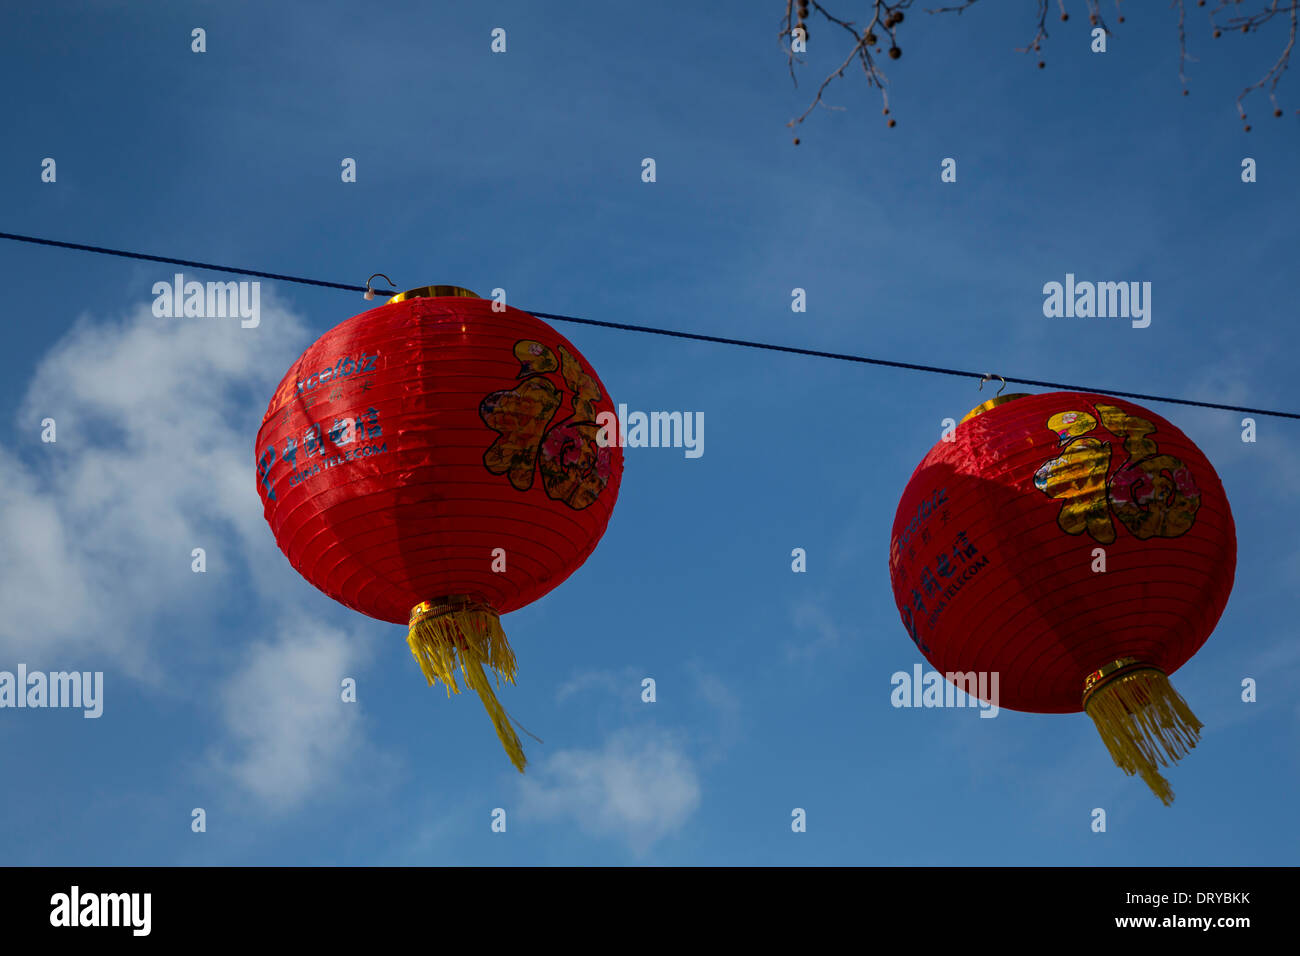 Two red Chinese lanterns against a vivid blue sky. - Stock Image